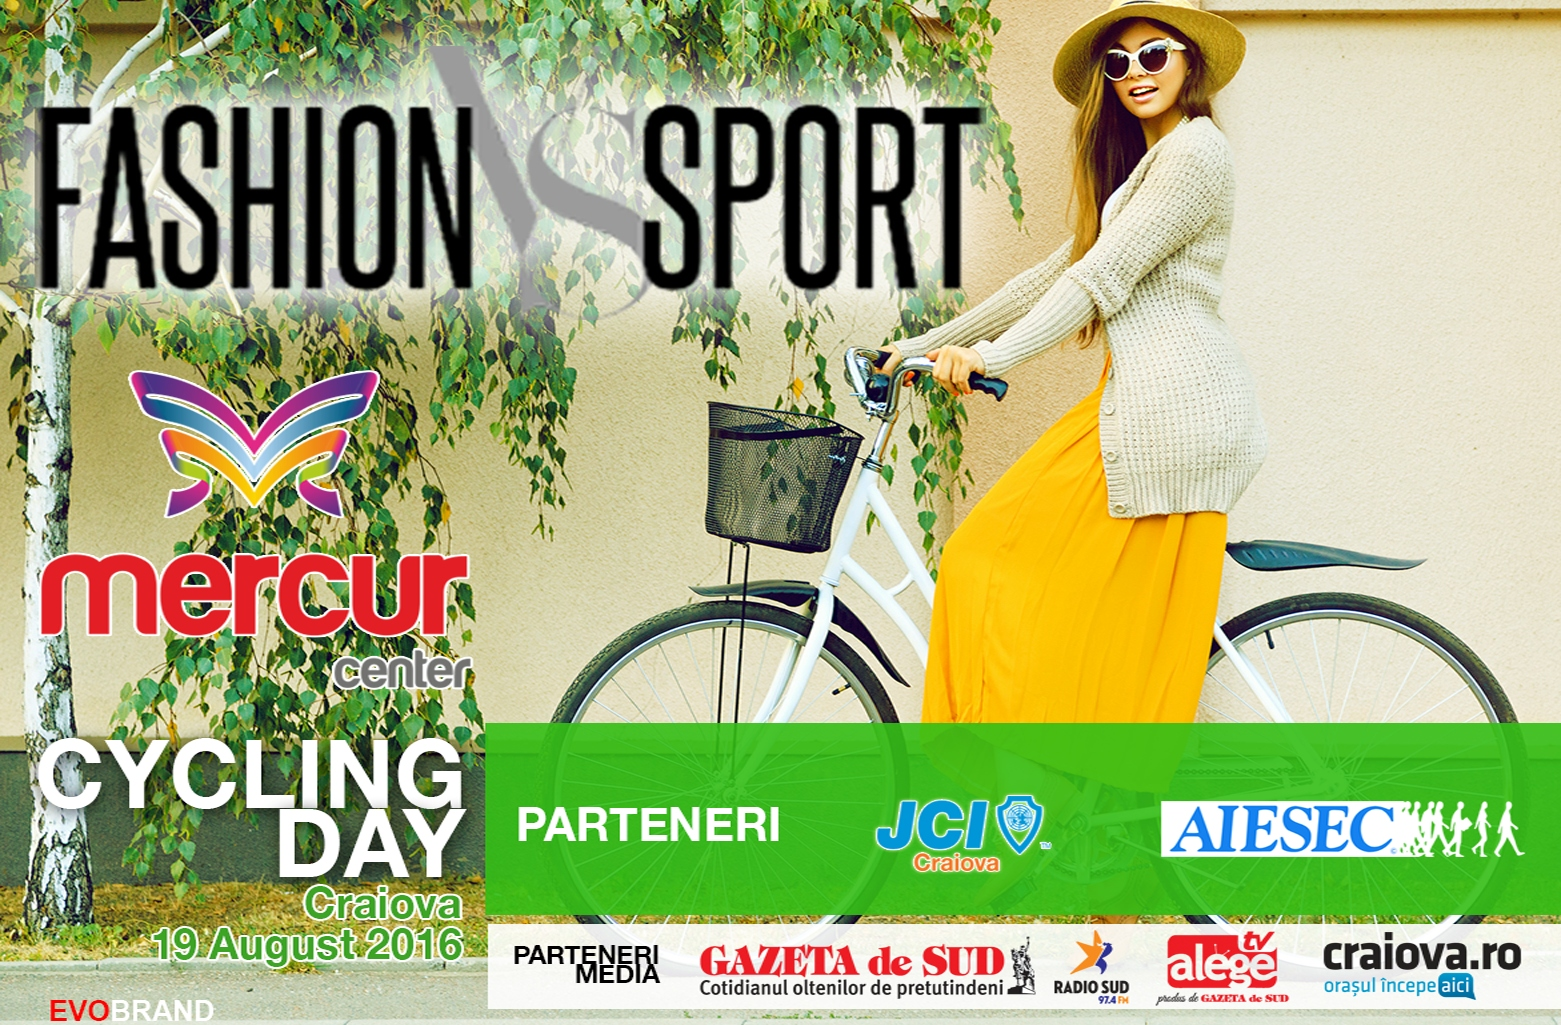 cycling-AIESEC-JCI-MERCUR-3-vizual